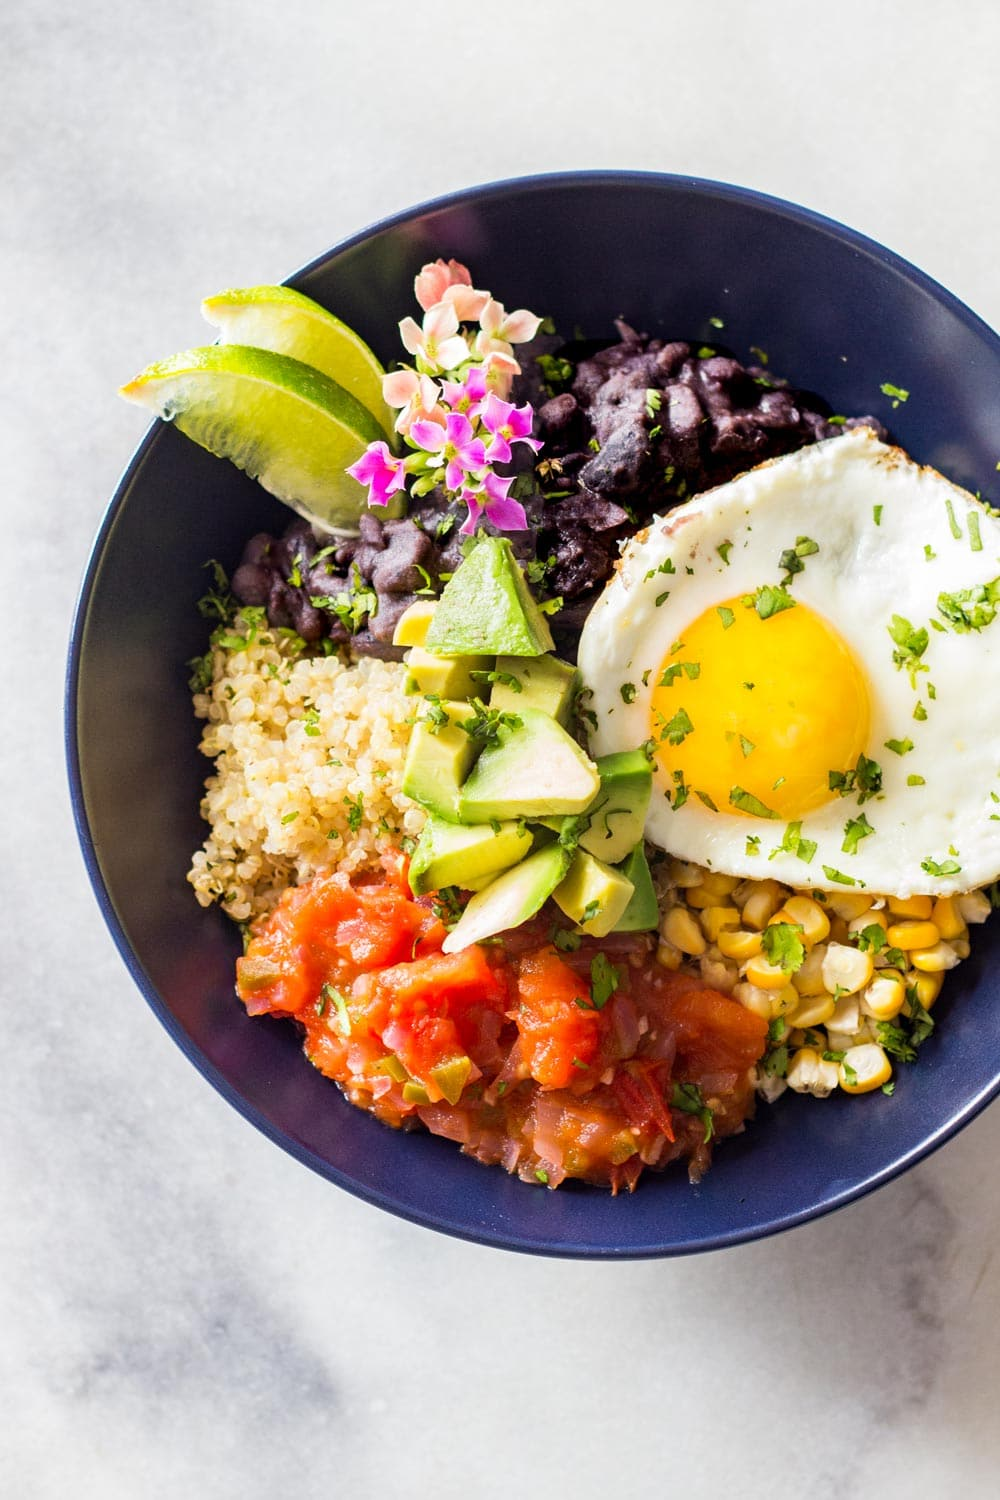 Healthy Foods With Quinoa